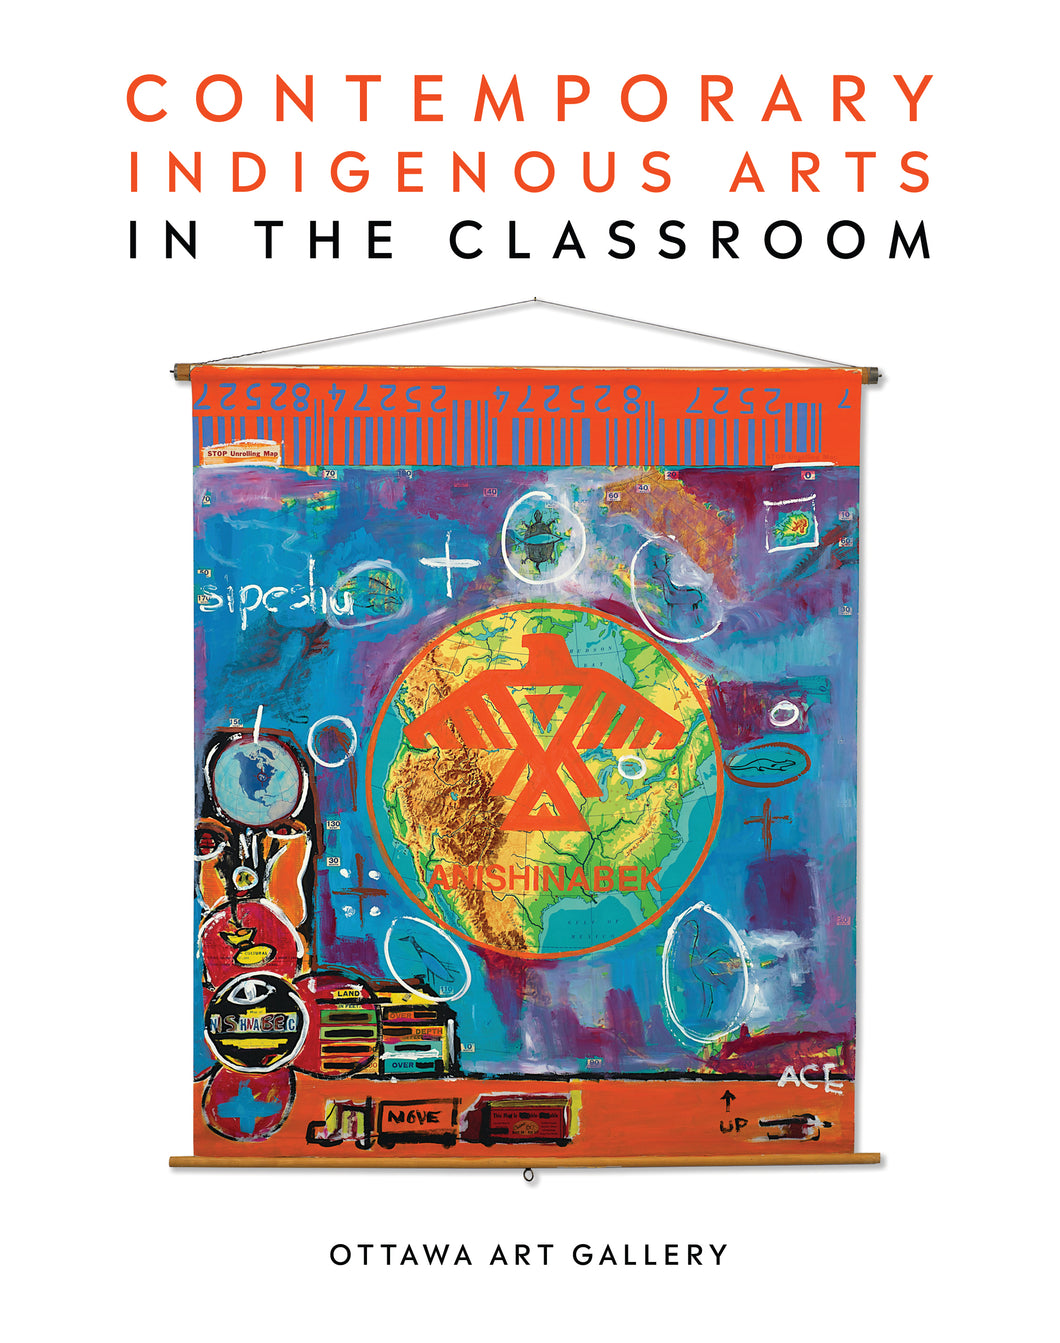 Contemporary Indigenous Arts in the Classroom